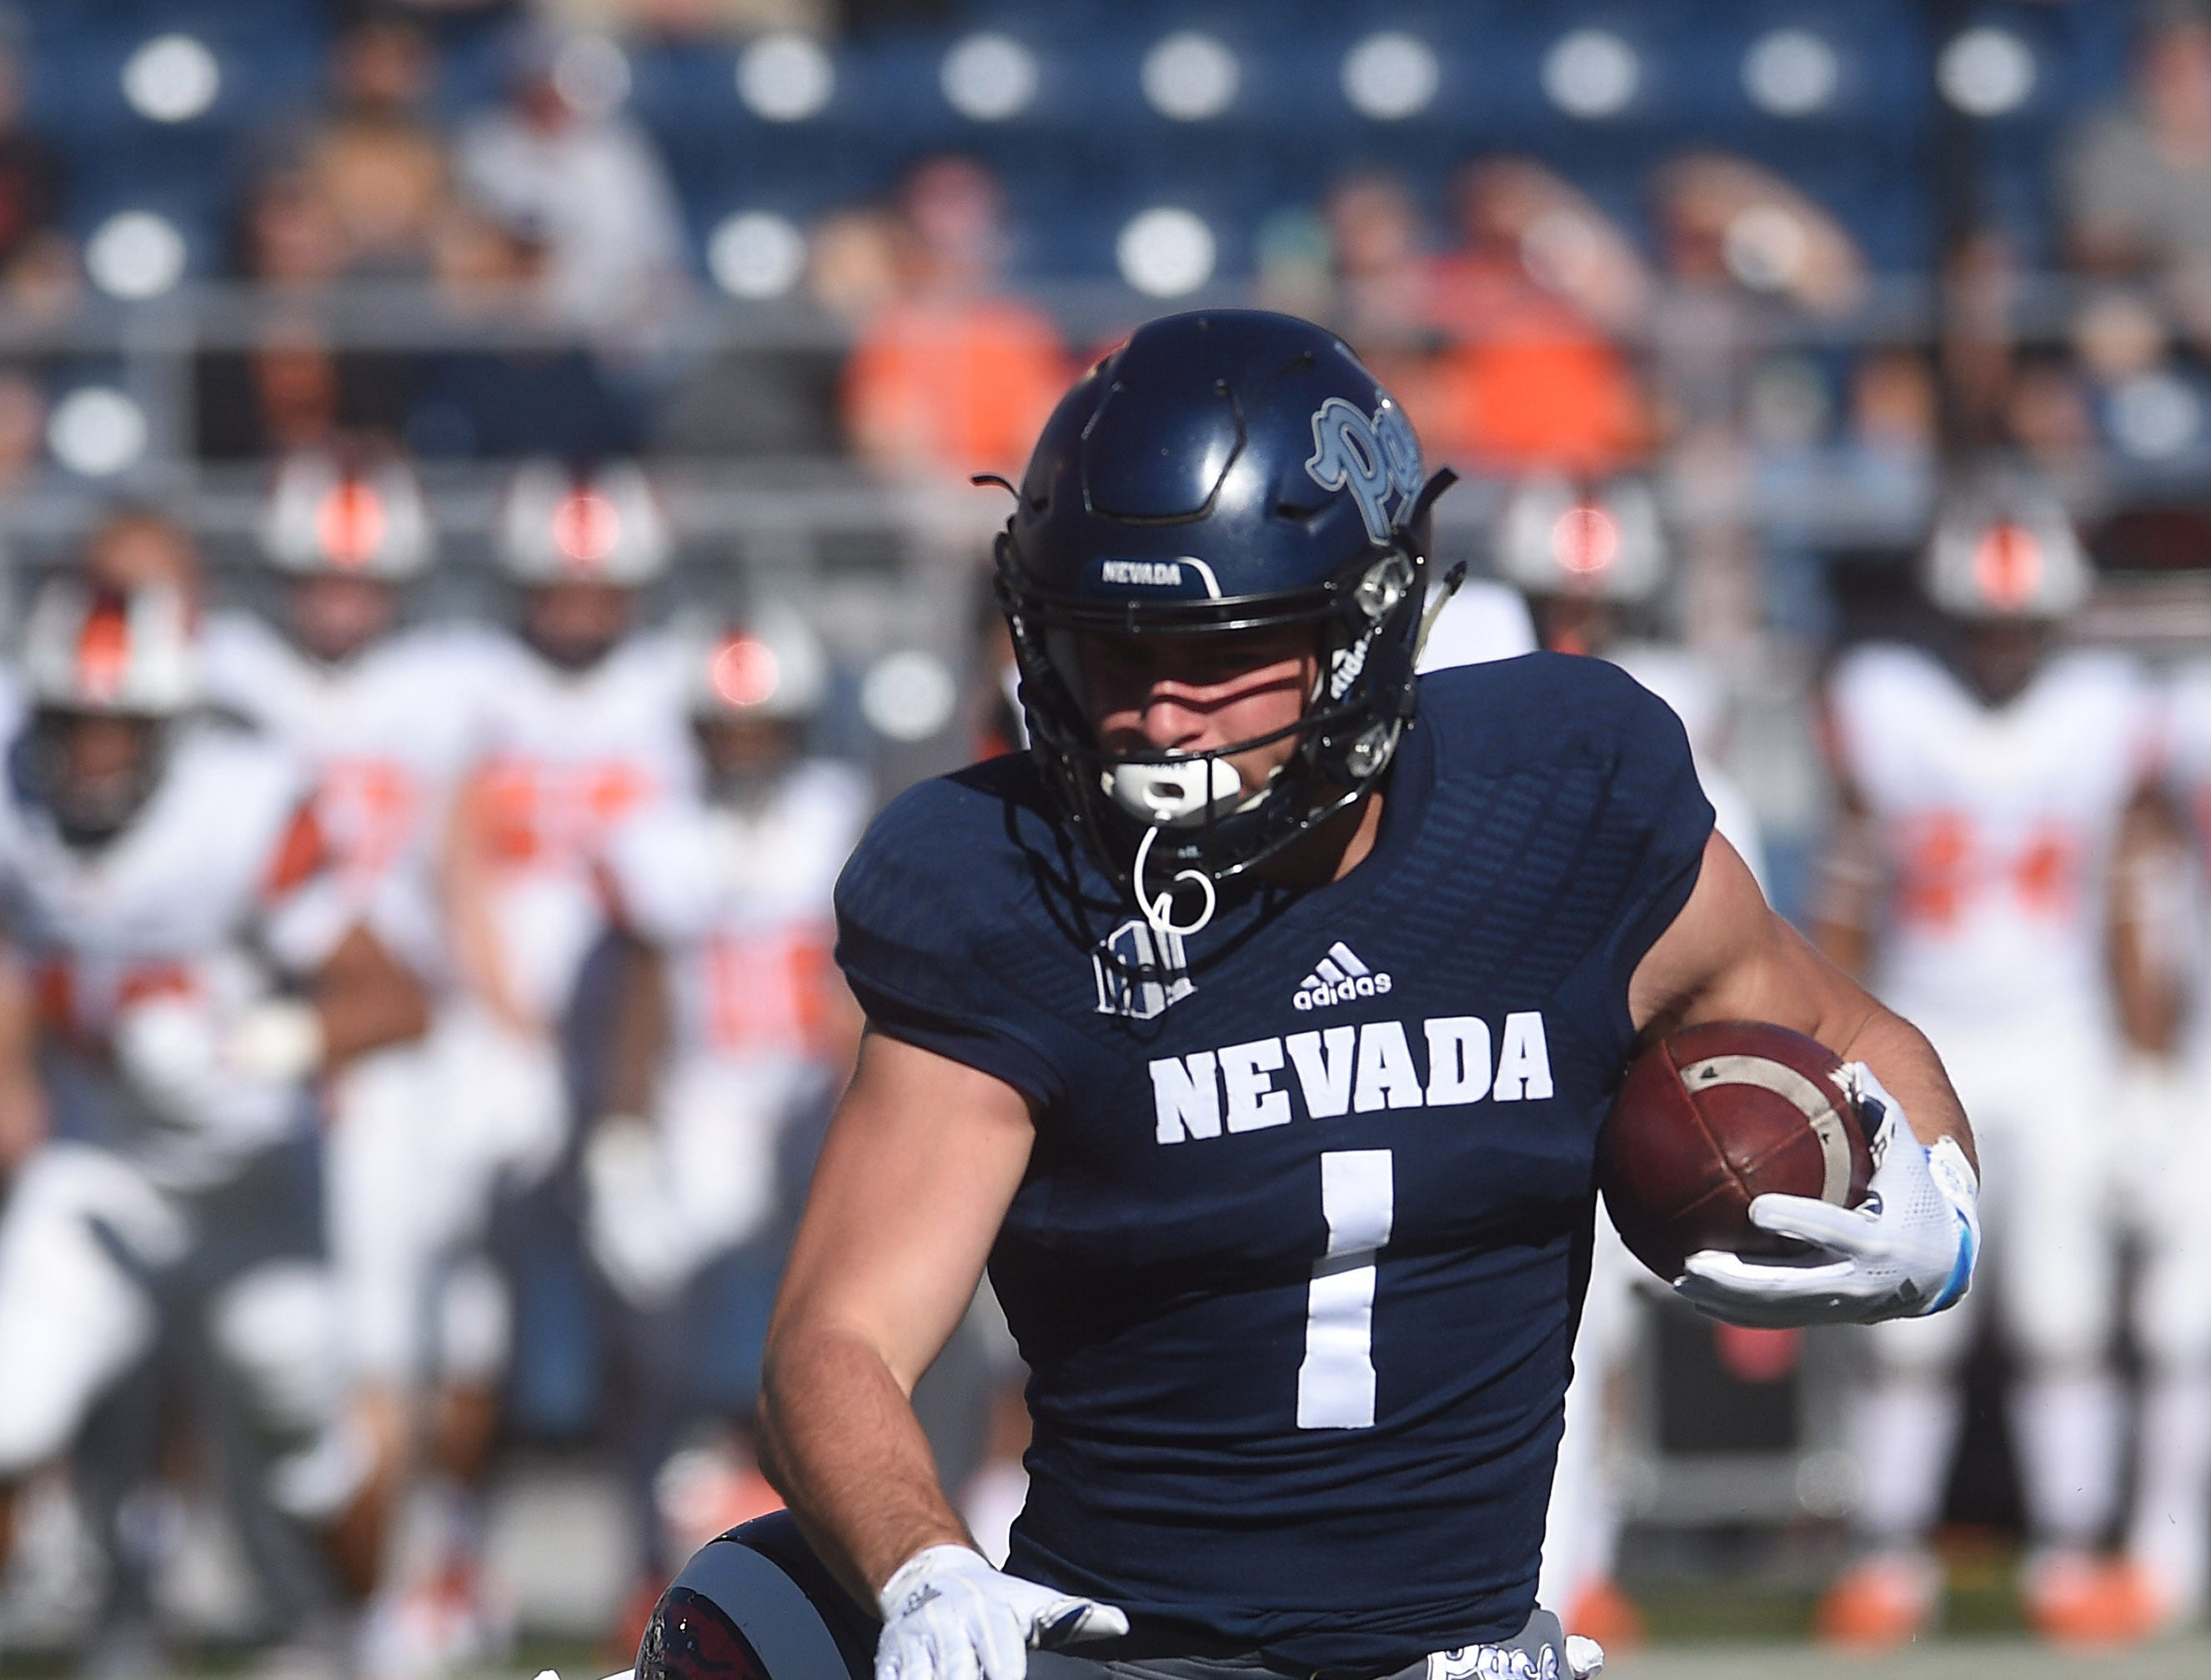 Nevada's McLane Mannix (1) runs with the ball against Oregon State during their football game at Mackay Stadium in Reno on Sept. 15, 2018.